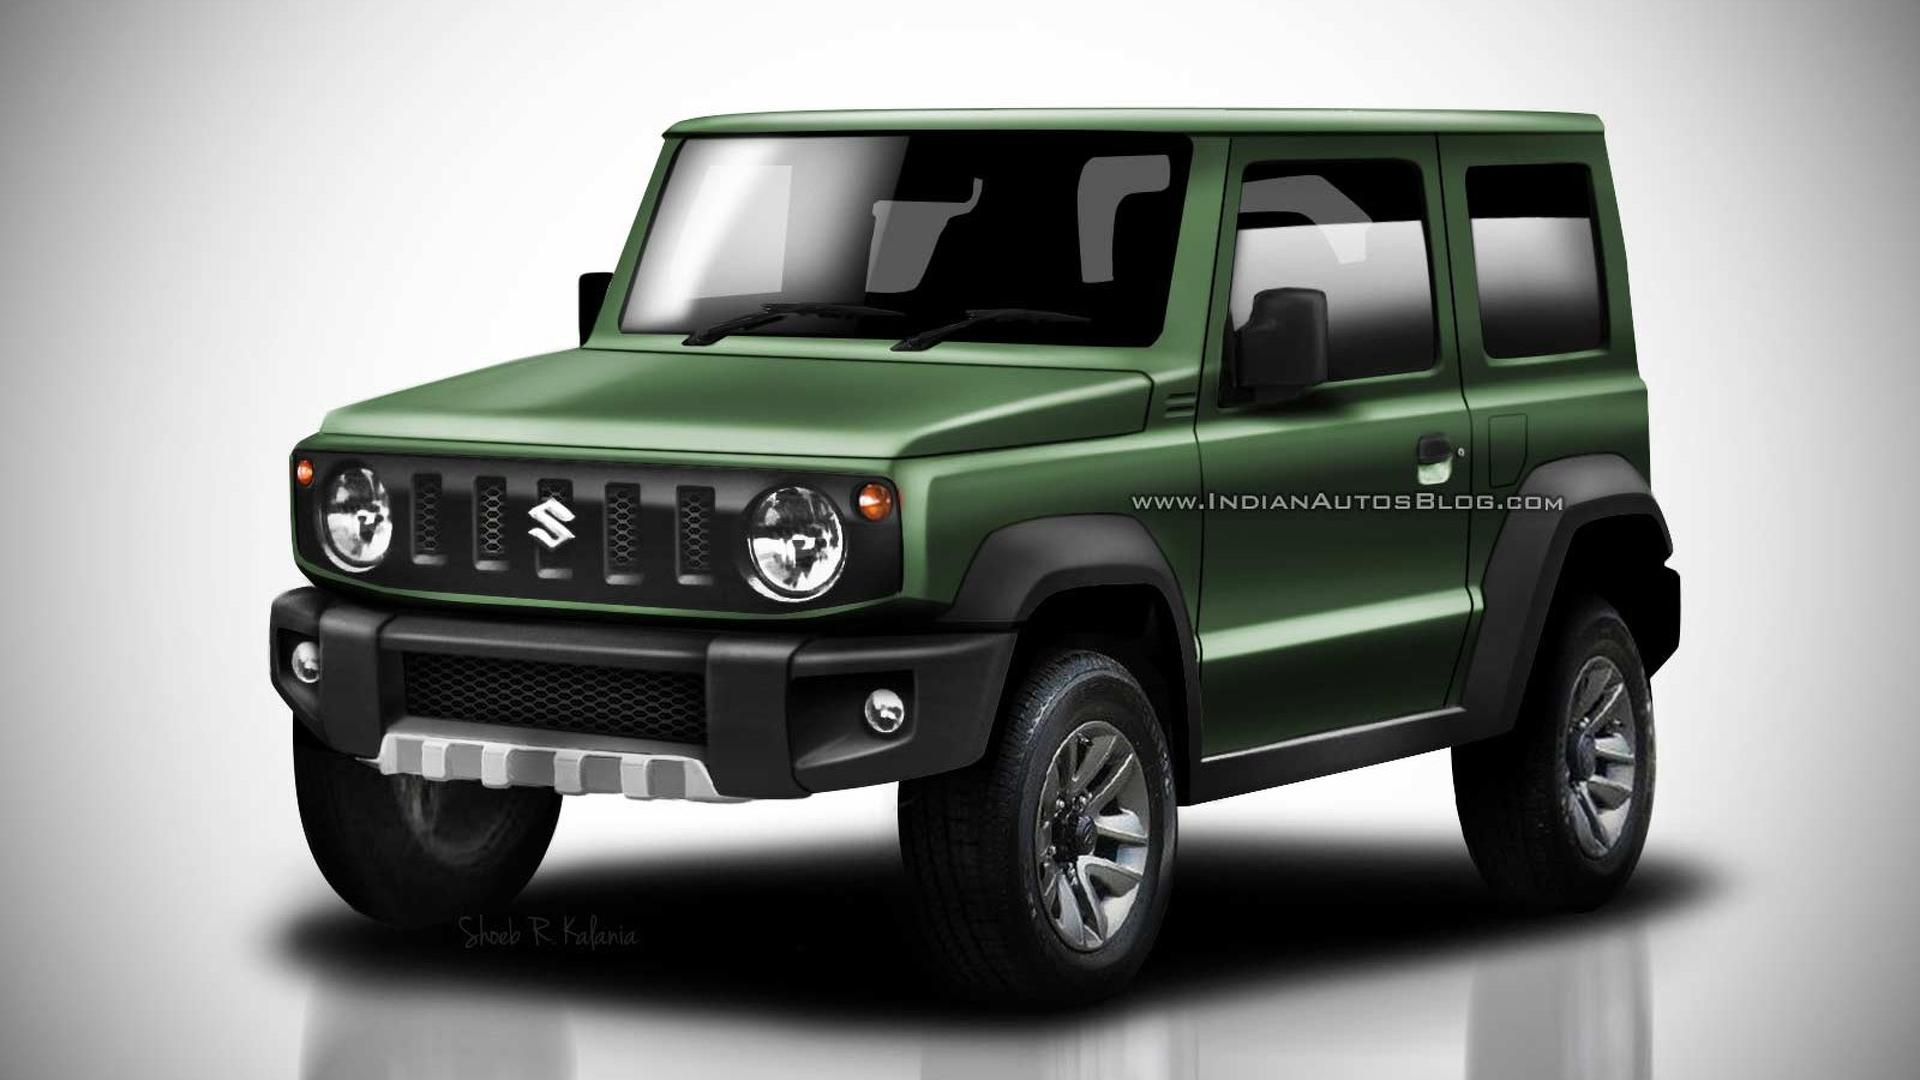 2018 suzuki jimny leaked images go high res in colorful renders. Black Bedroom Furniture Sets. Home Design Ideas